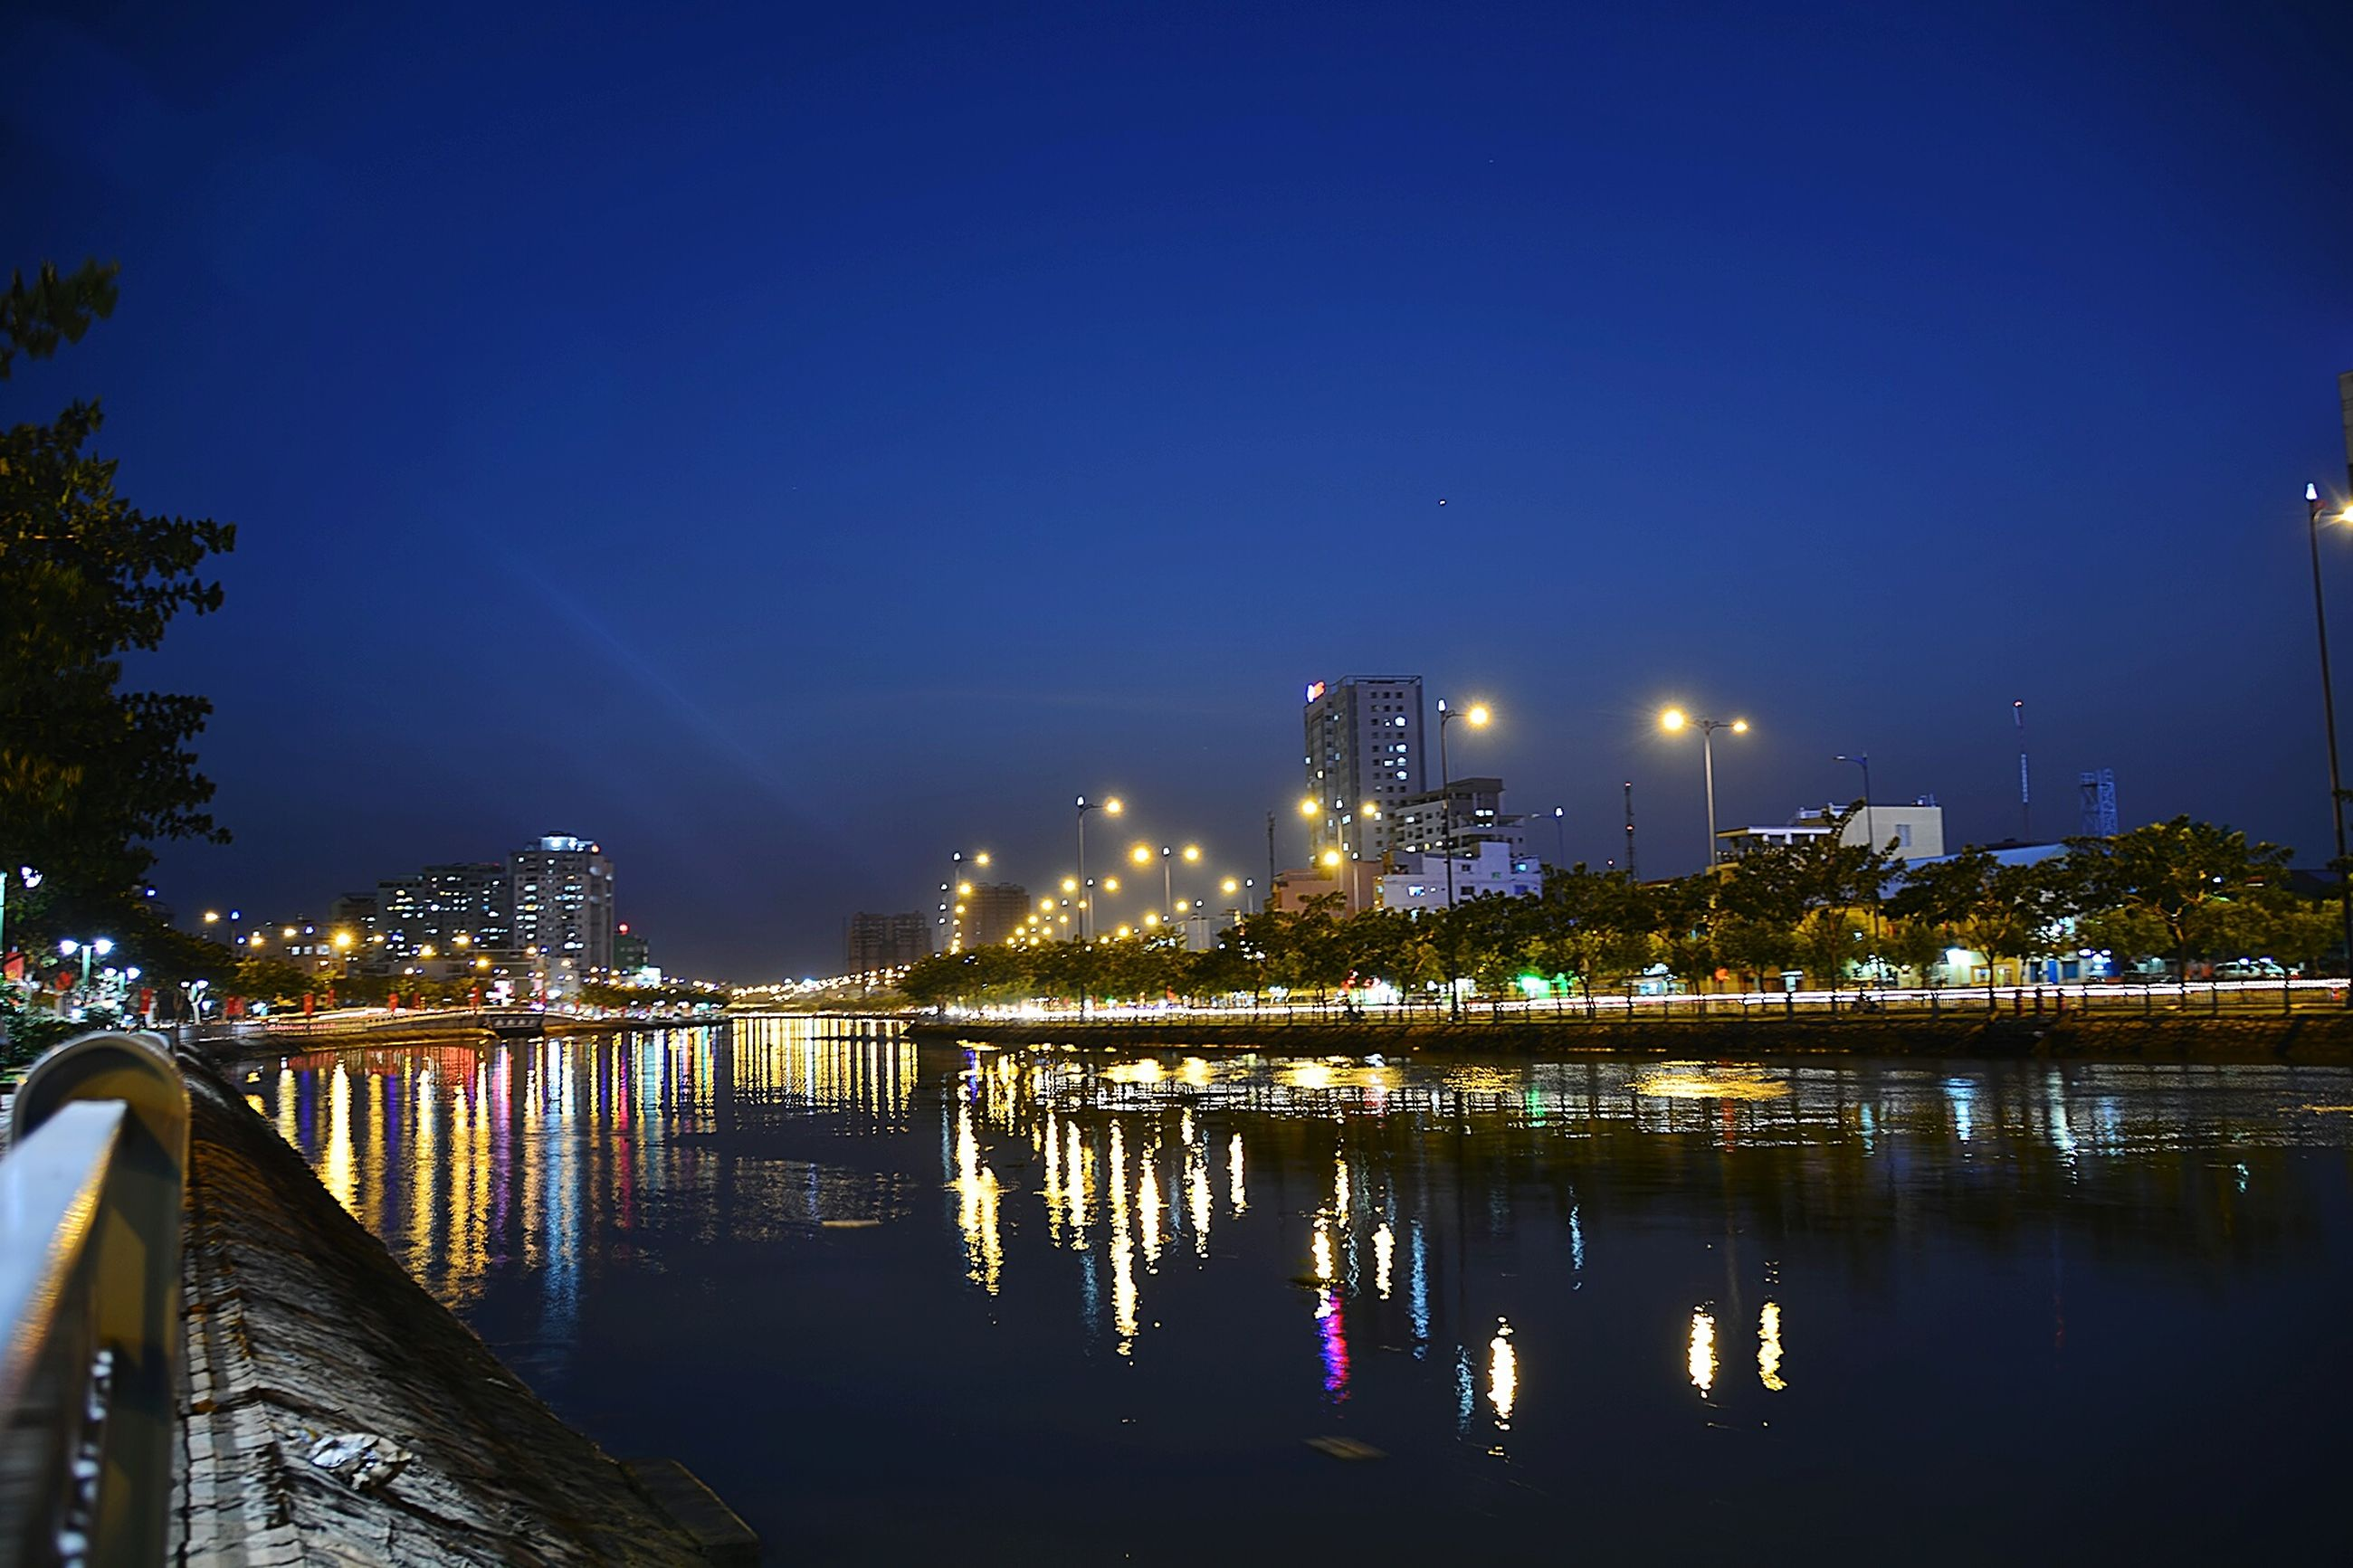 illuminated, night, water, reflection, architecture, built structure, clear sky, building exterior, city, river, blue, waterfront, copy space, sky, street light, lighting equipment, connection, bridge - man made structure, outdoors, light - natural phenomenon